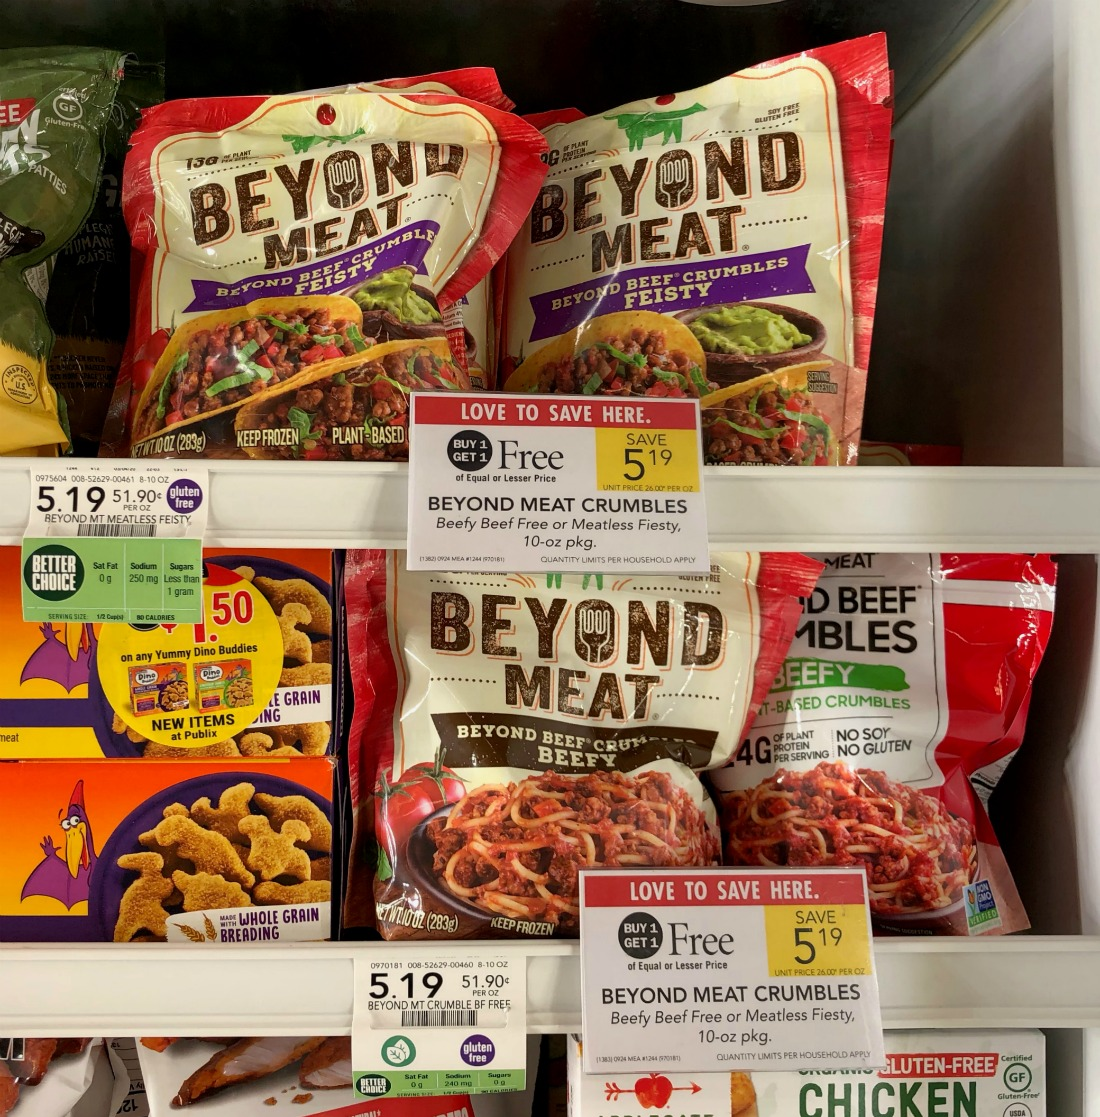 Beyond Meat Crumbles Only $2.79 At Publix on I Heart Publix